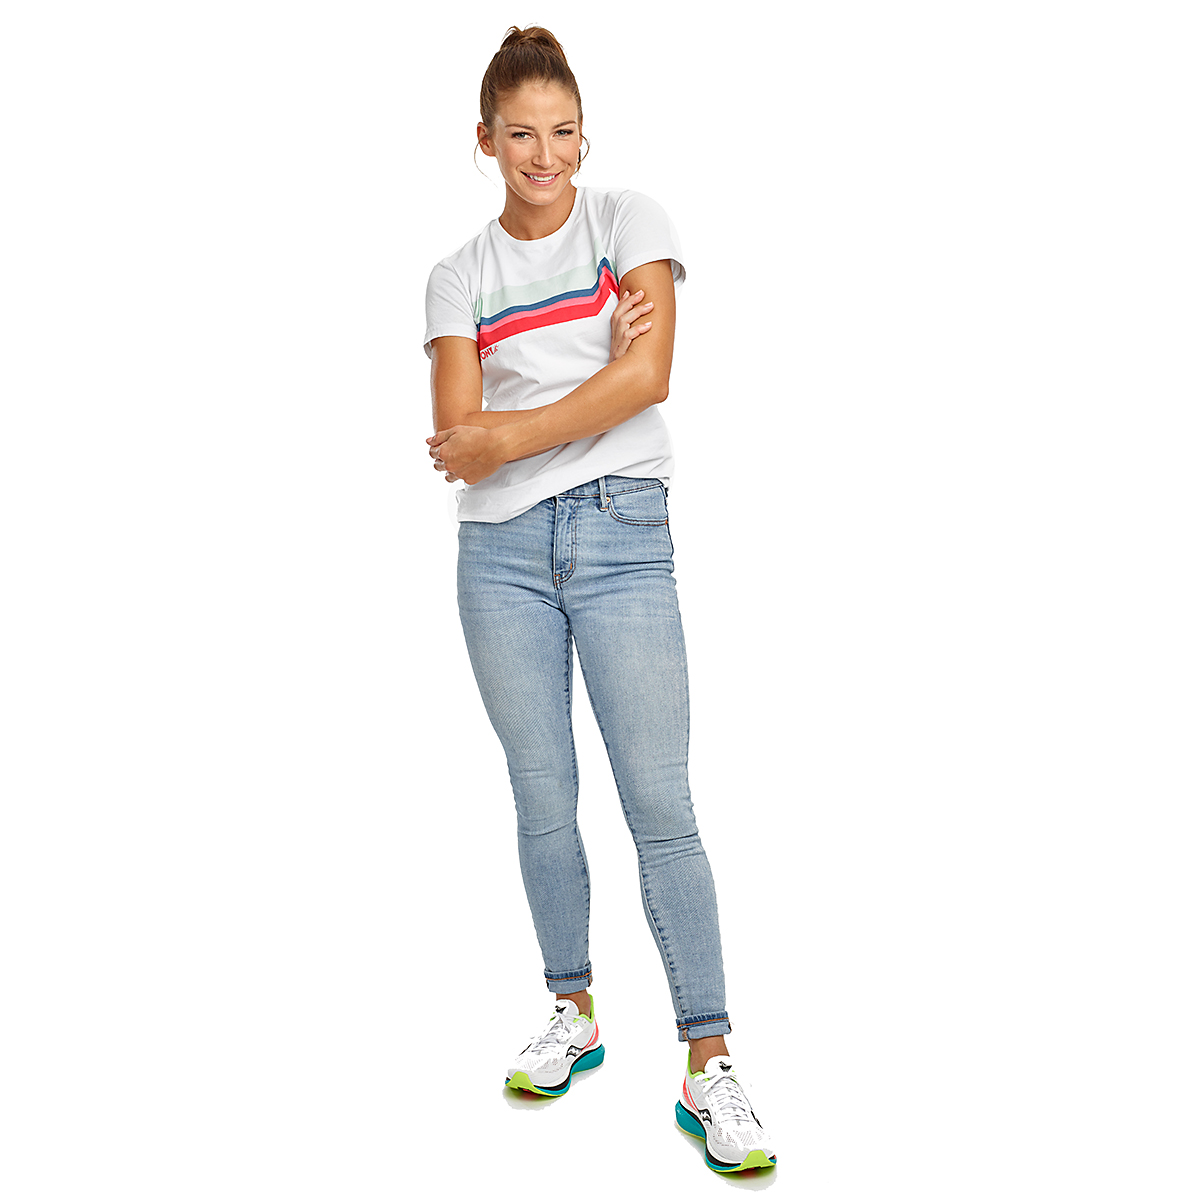 Women's Saucony Rested Short Sleeve - Color: White - Size: XXS, White, large, image 4